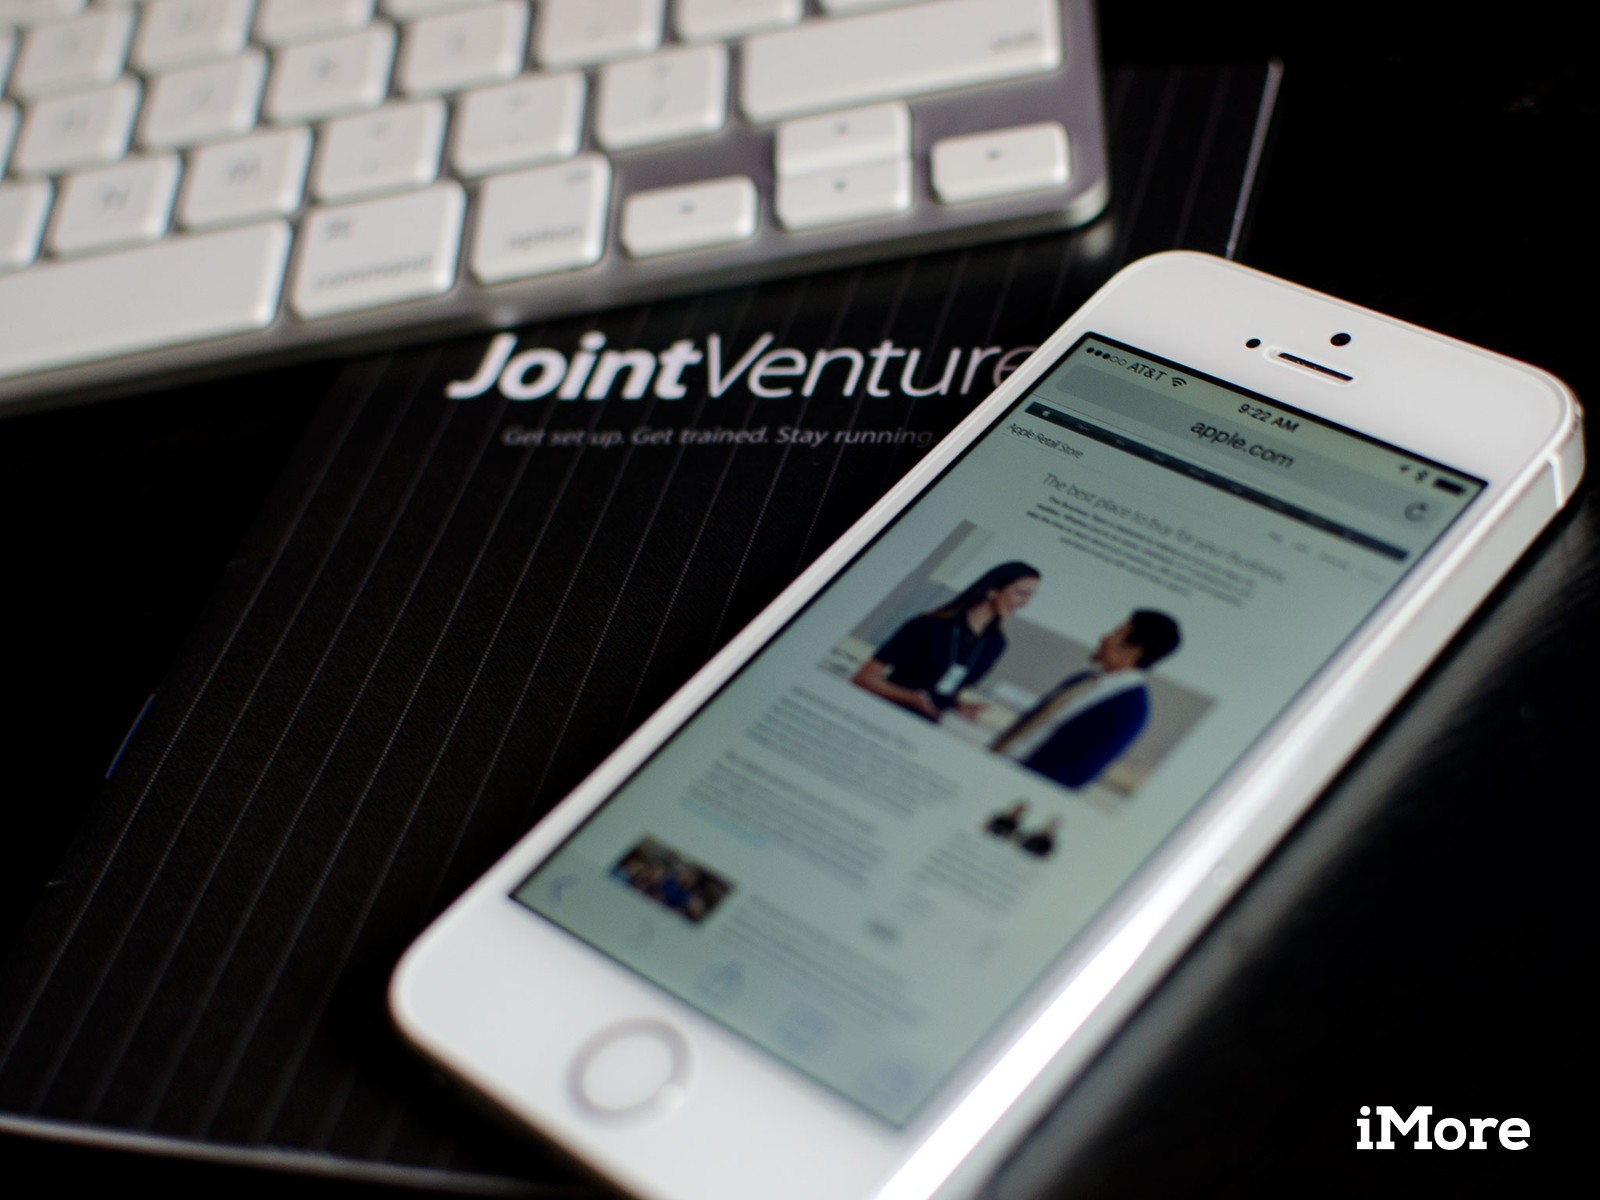 How to earn discounts on Apple products for business with Joint Venture